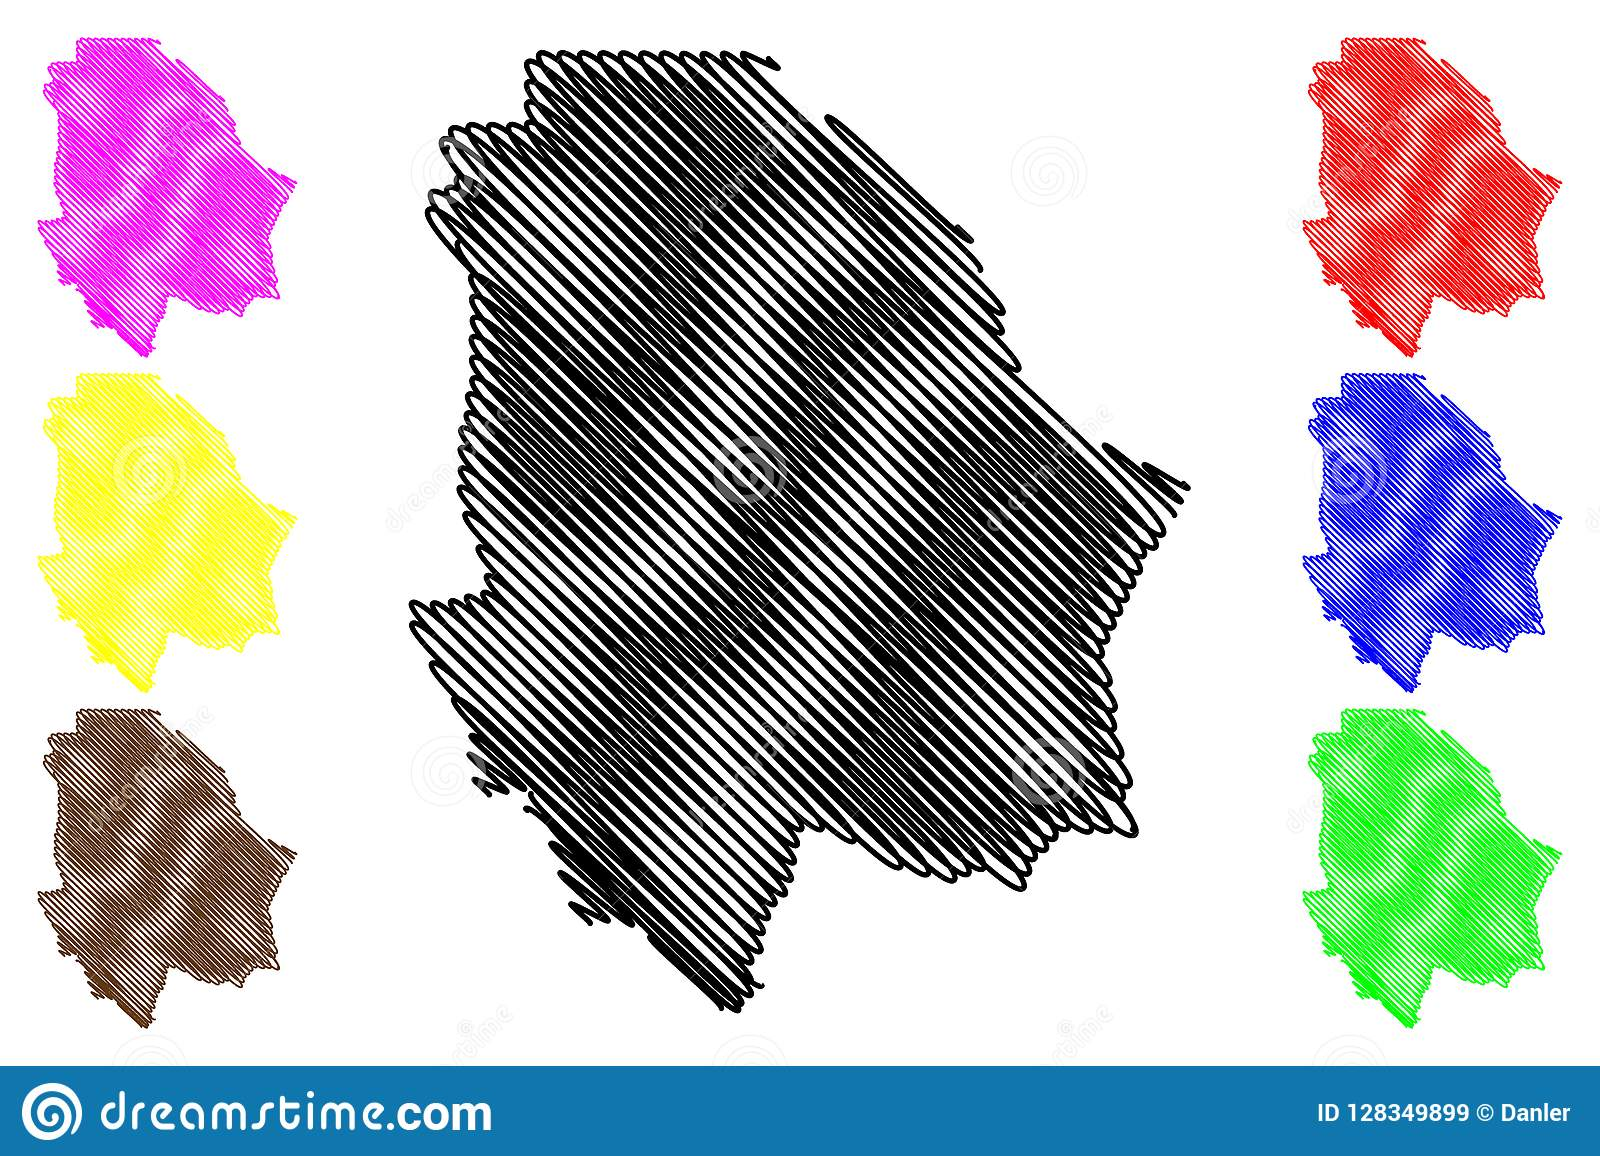 State Map Mexico.Chihuahua State Map Vector Stock Vector Illustration Of Icon